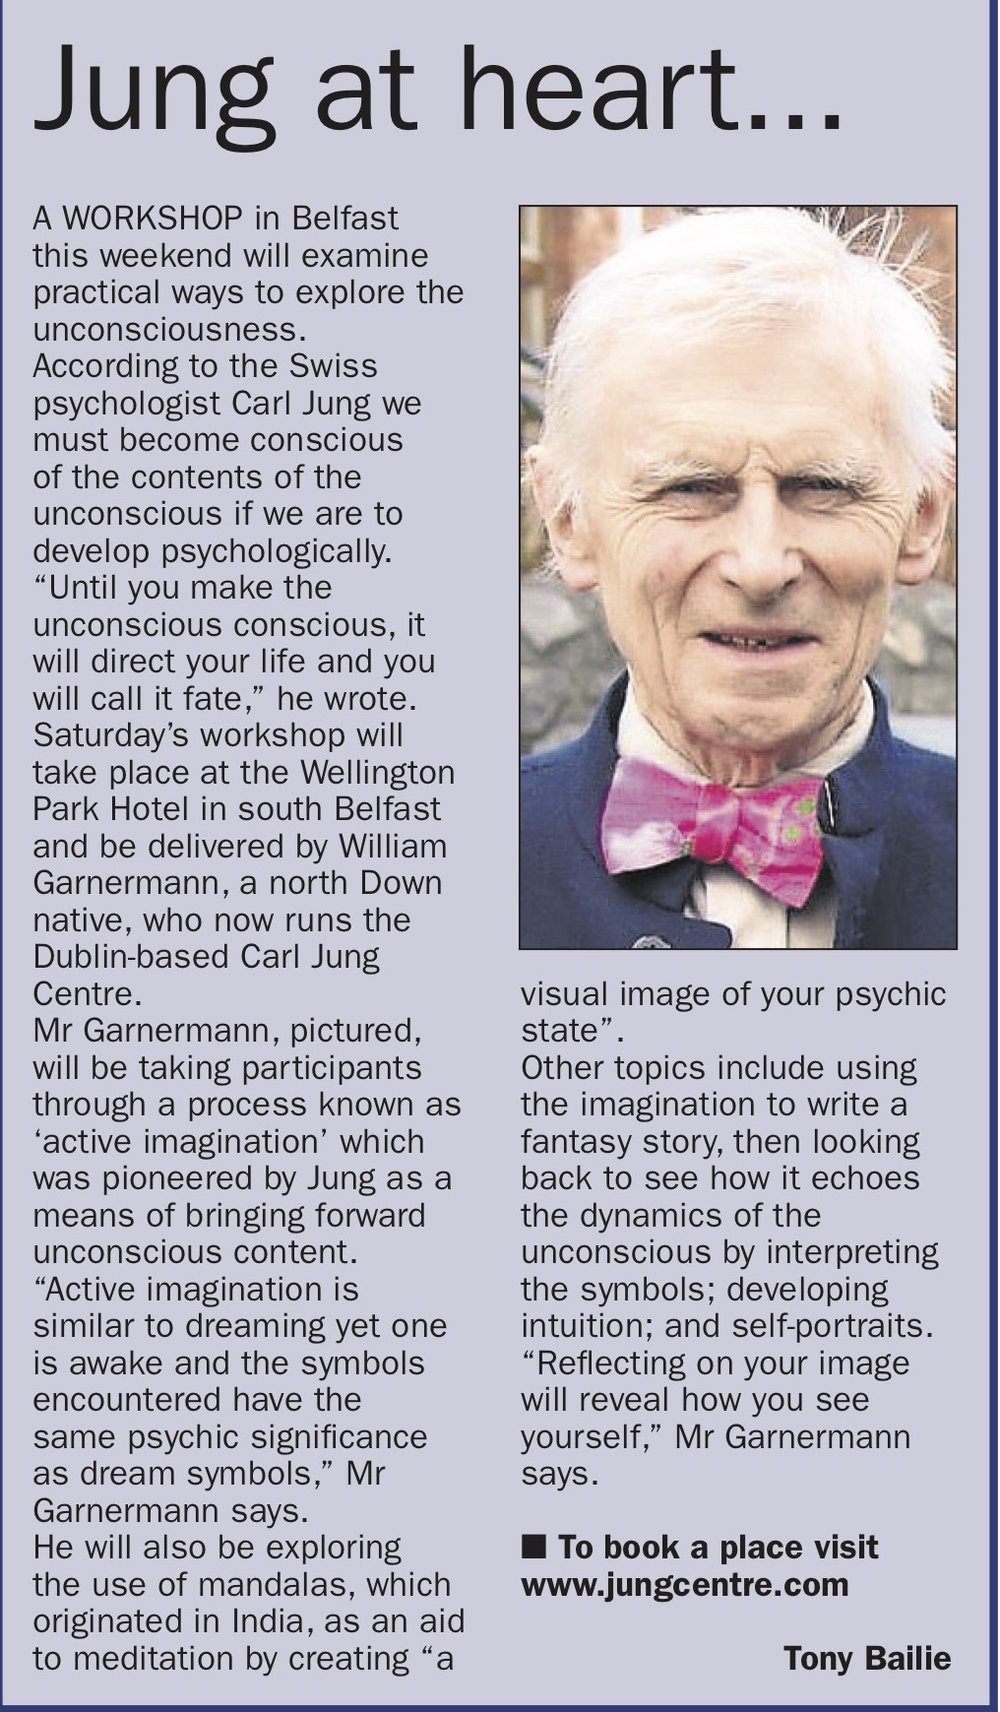 Jung at heart: Using active imagination to explore the contents of the unconscious -